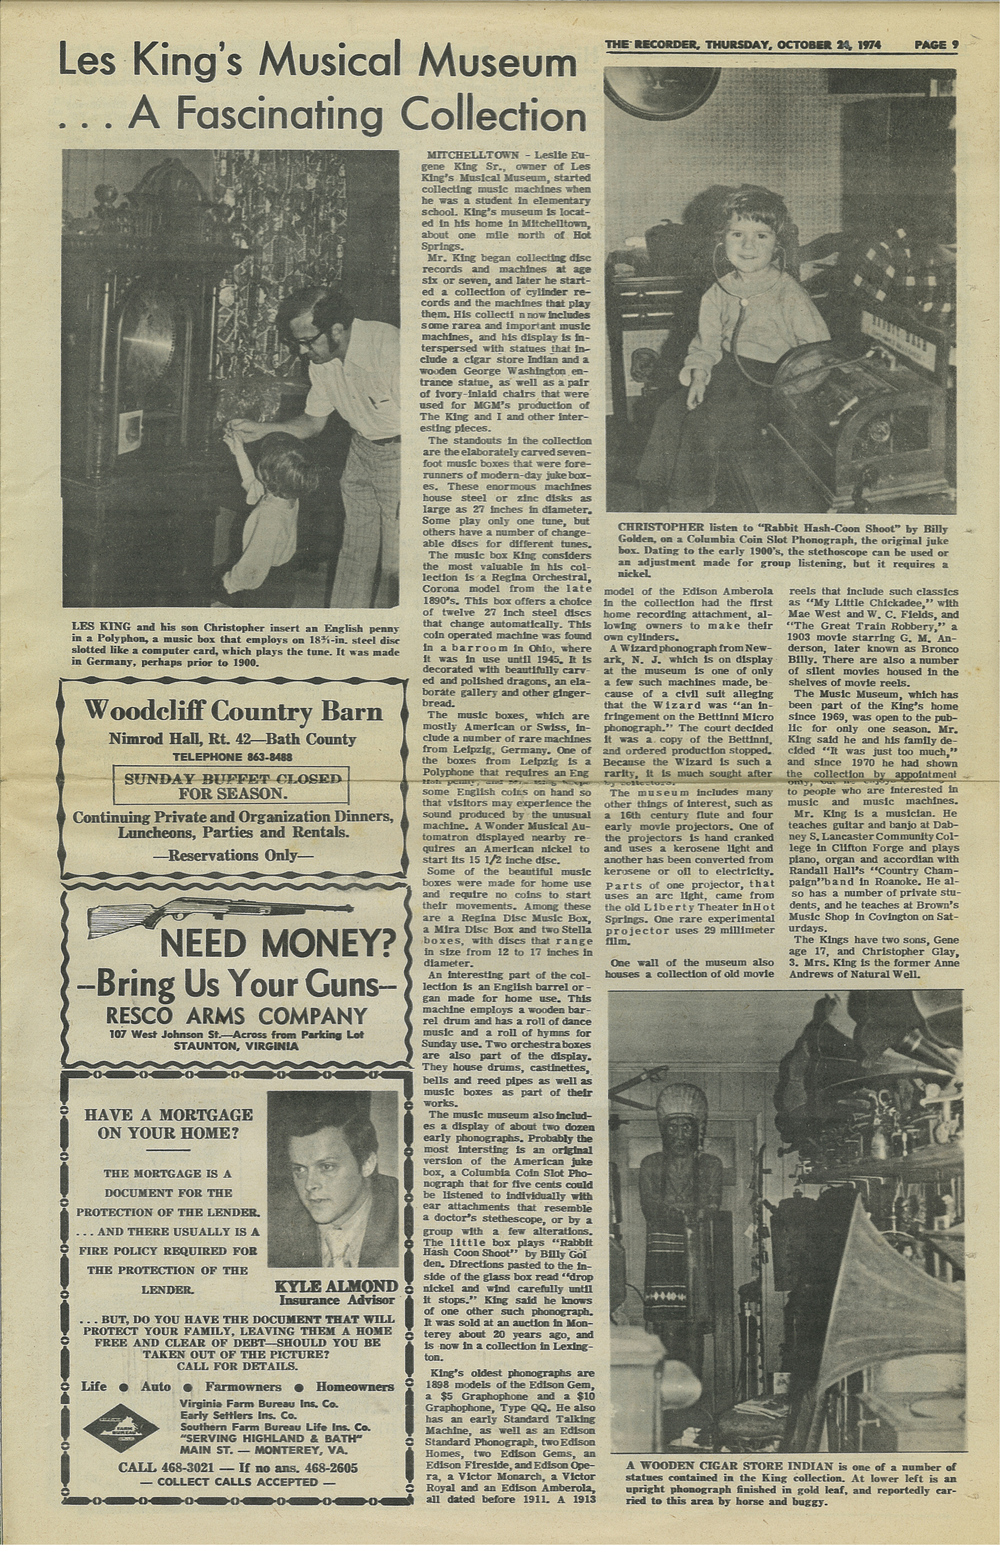 The Recorder 10.24.1974 Les King's Musical Museum... A Fascinating Collection